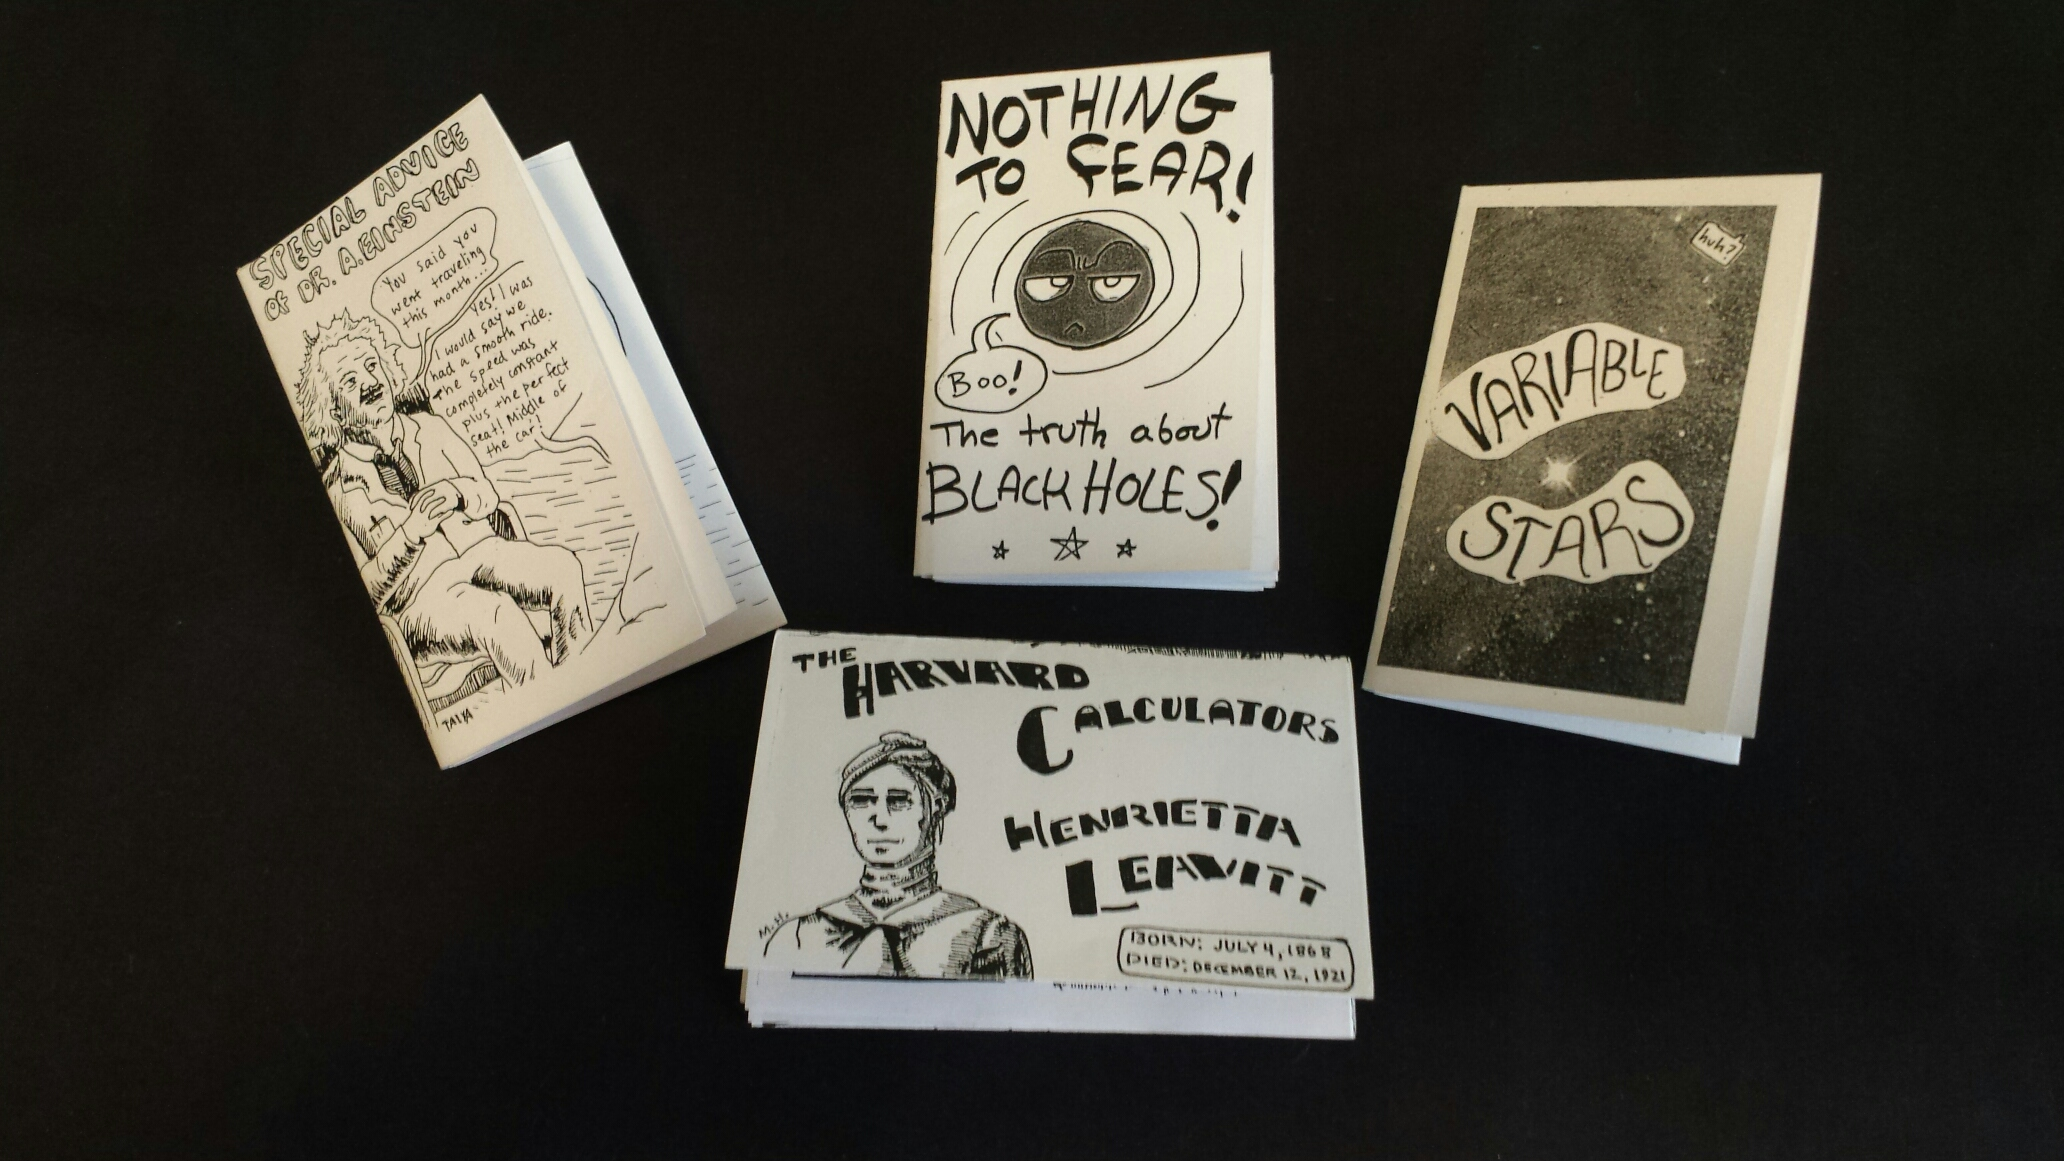 The image gives pictures of zines.